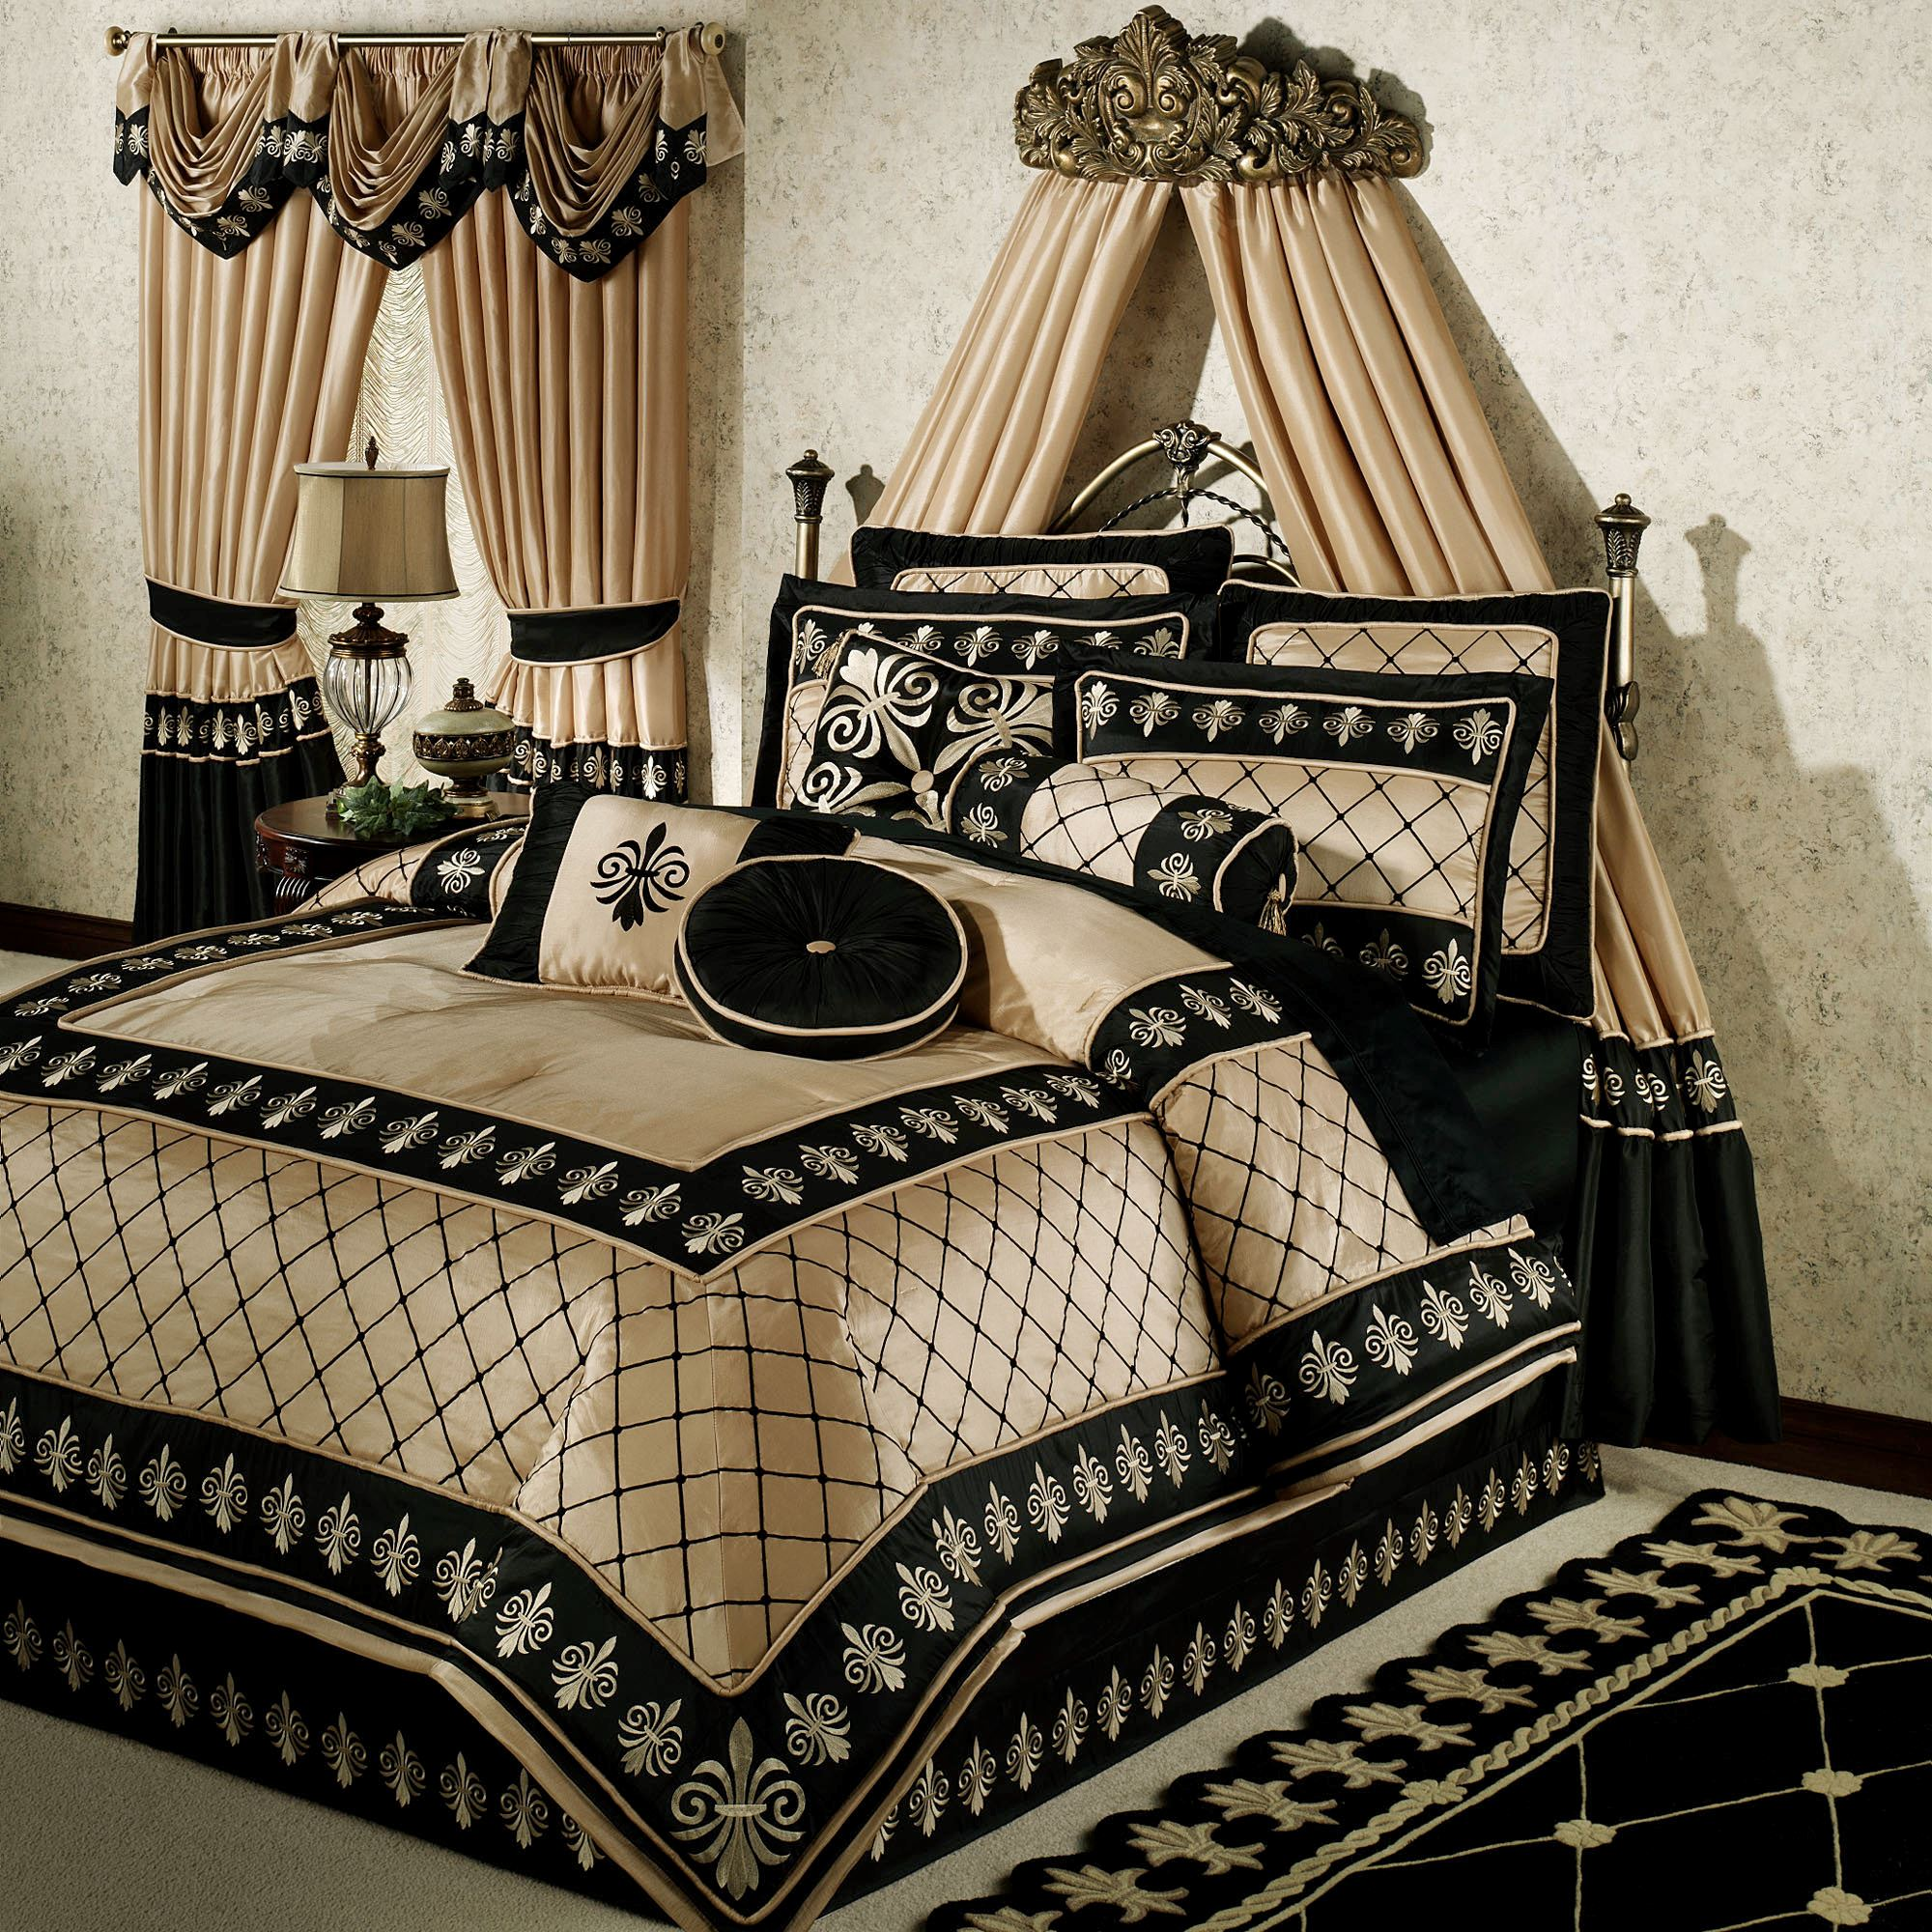 Luxury Comforter Sets | Bed Bath and Beyond Comforter | Luxury Cotton Comforter Sets